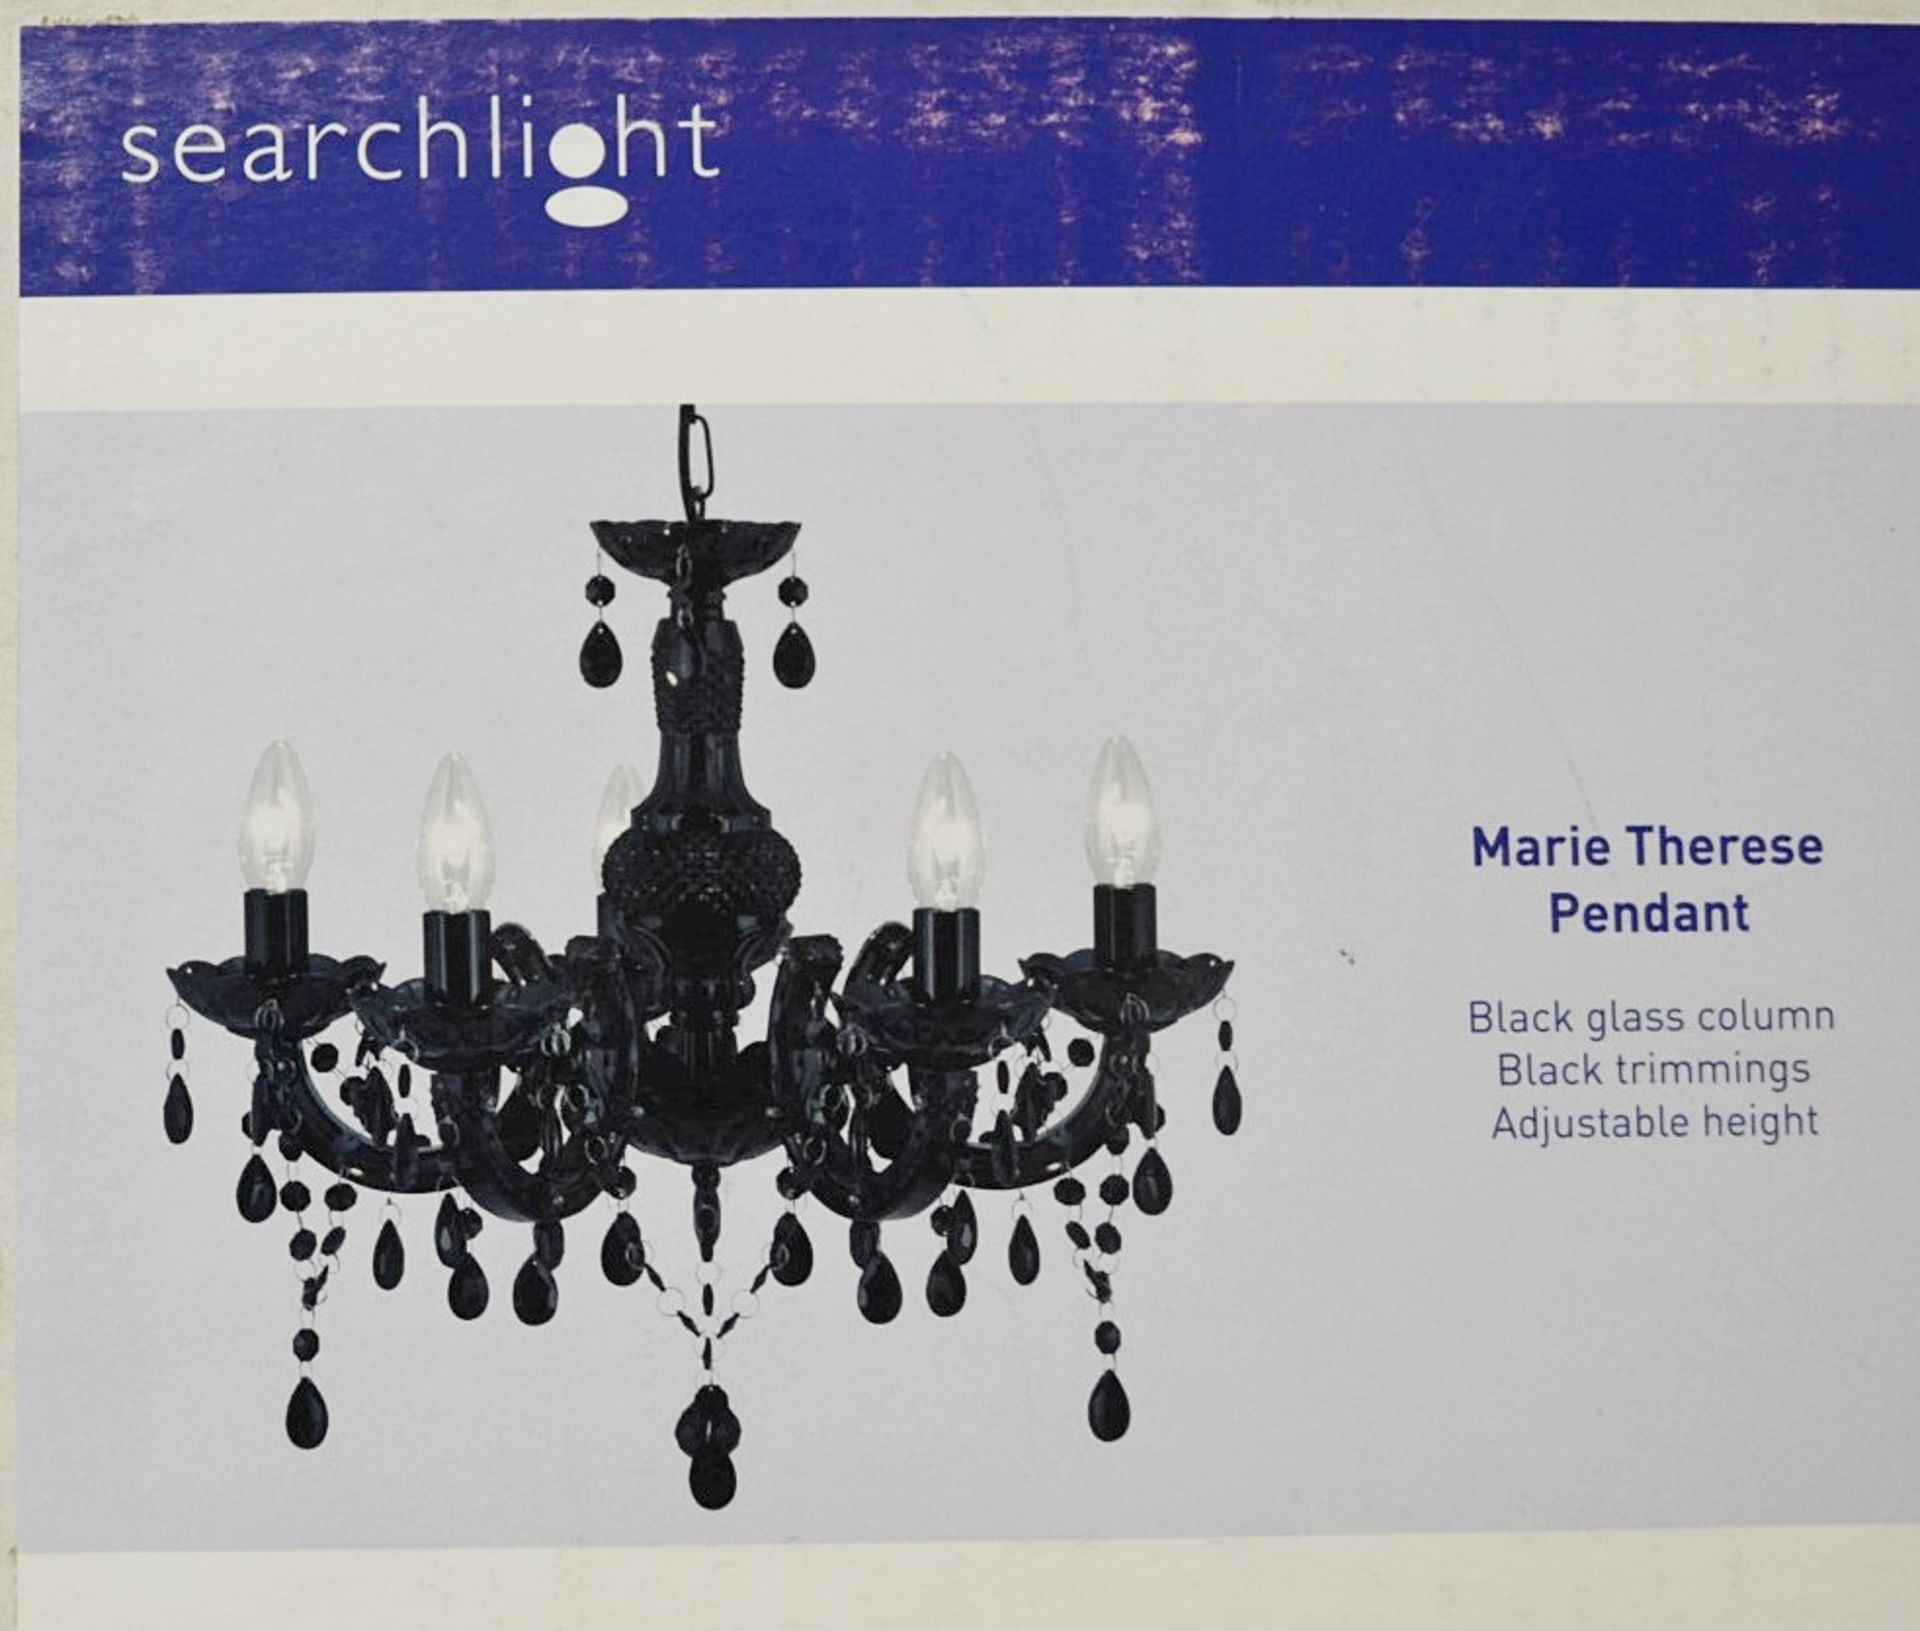 Lot 9150 - 1 x Searchlight Marie Therese Black Acrylic 5 Light Chandelier With Acrylic Glass Drops - Boxed